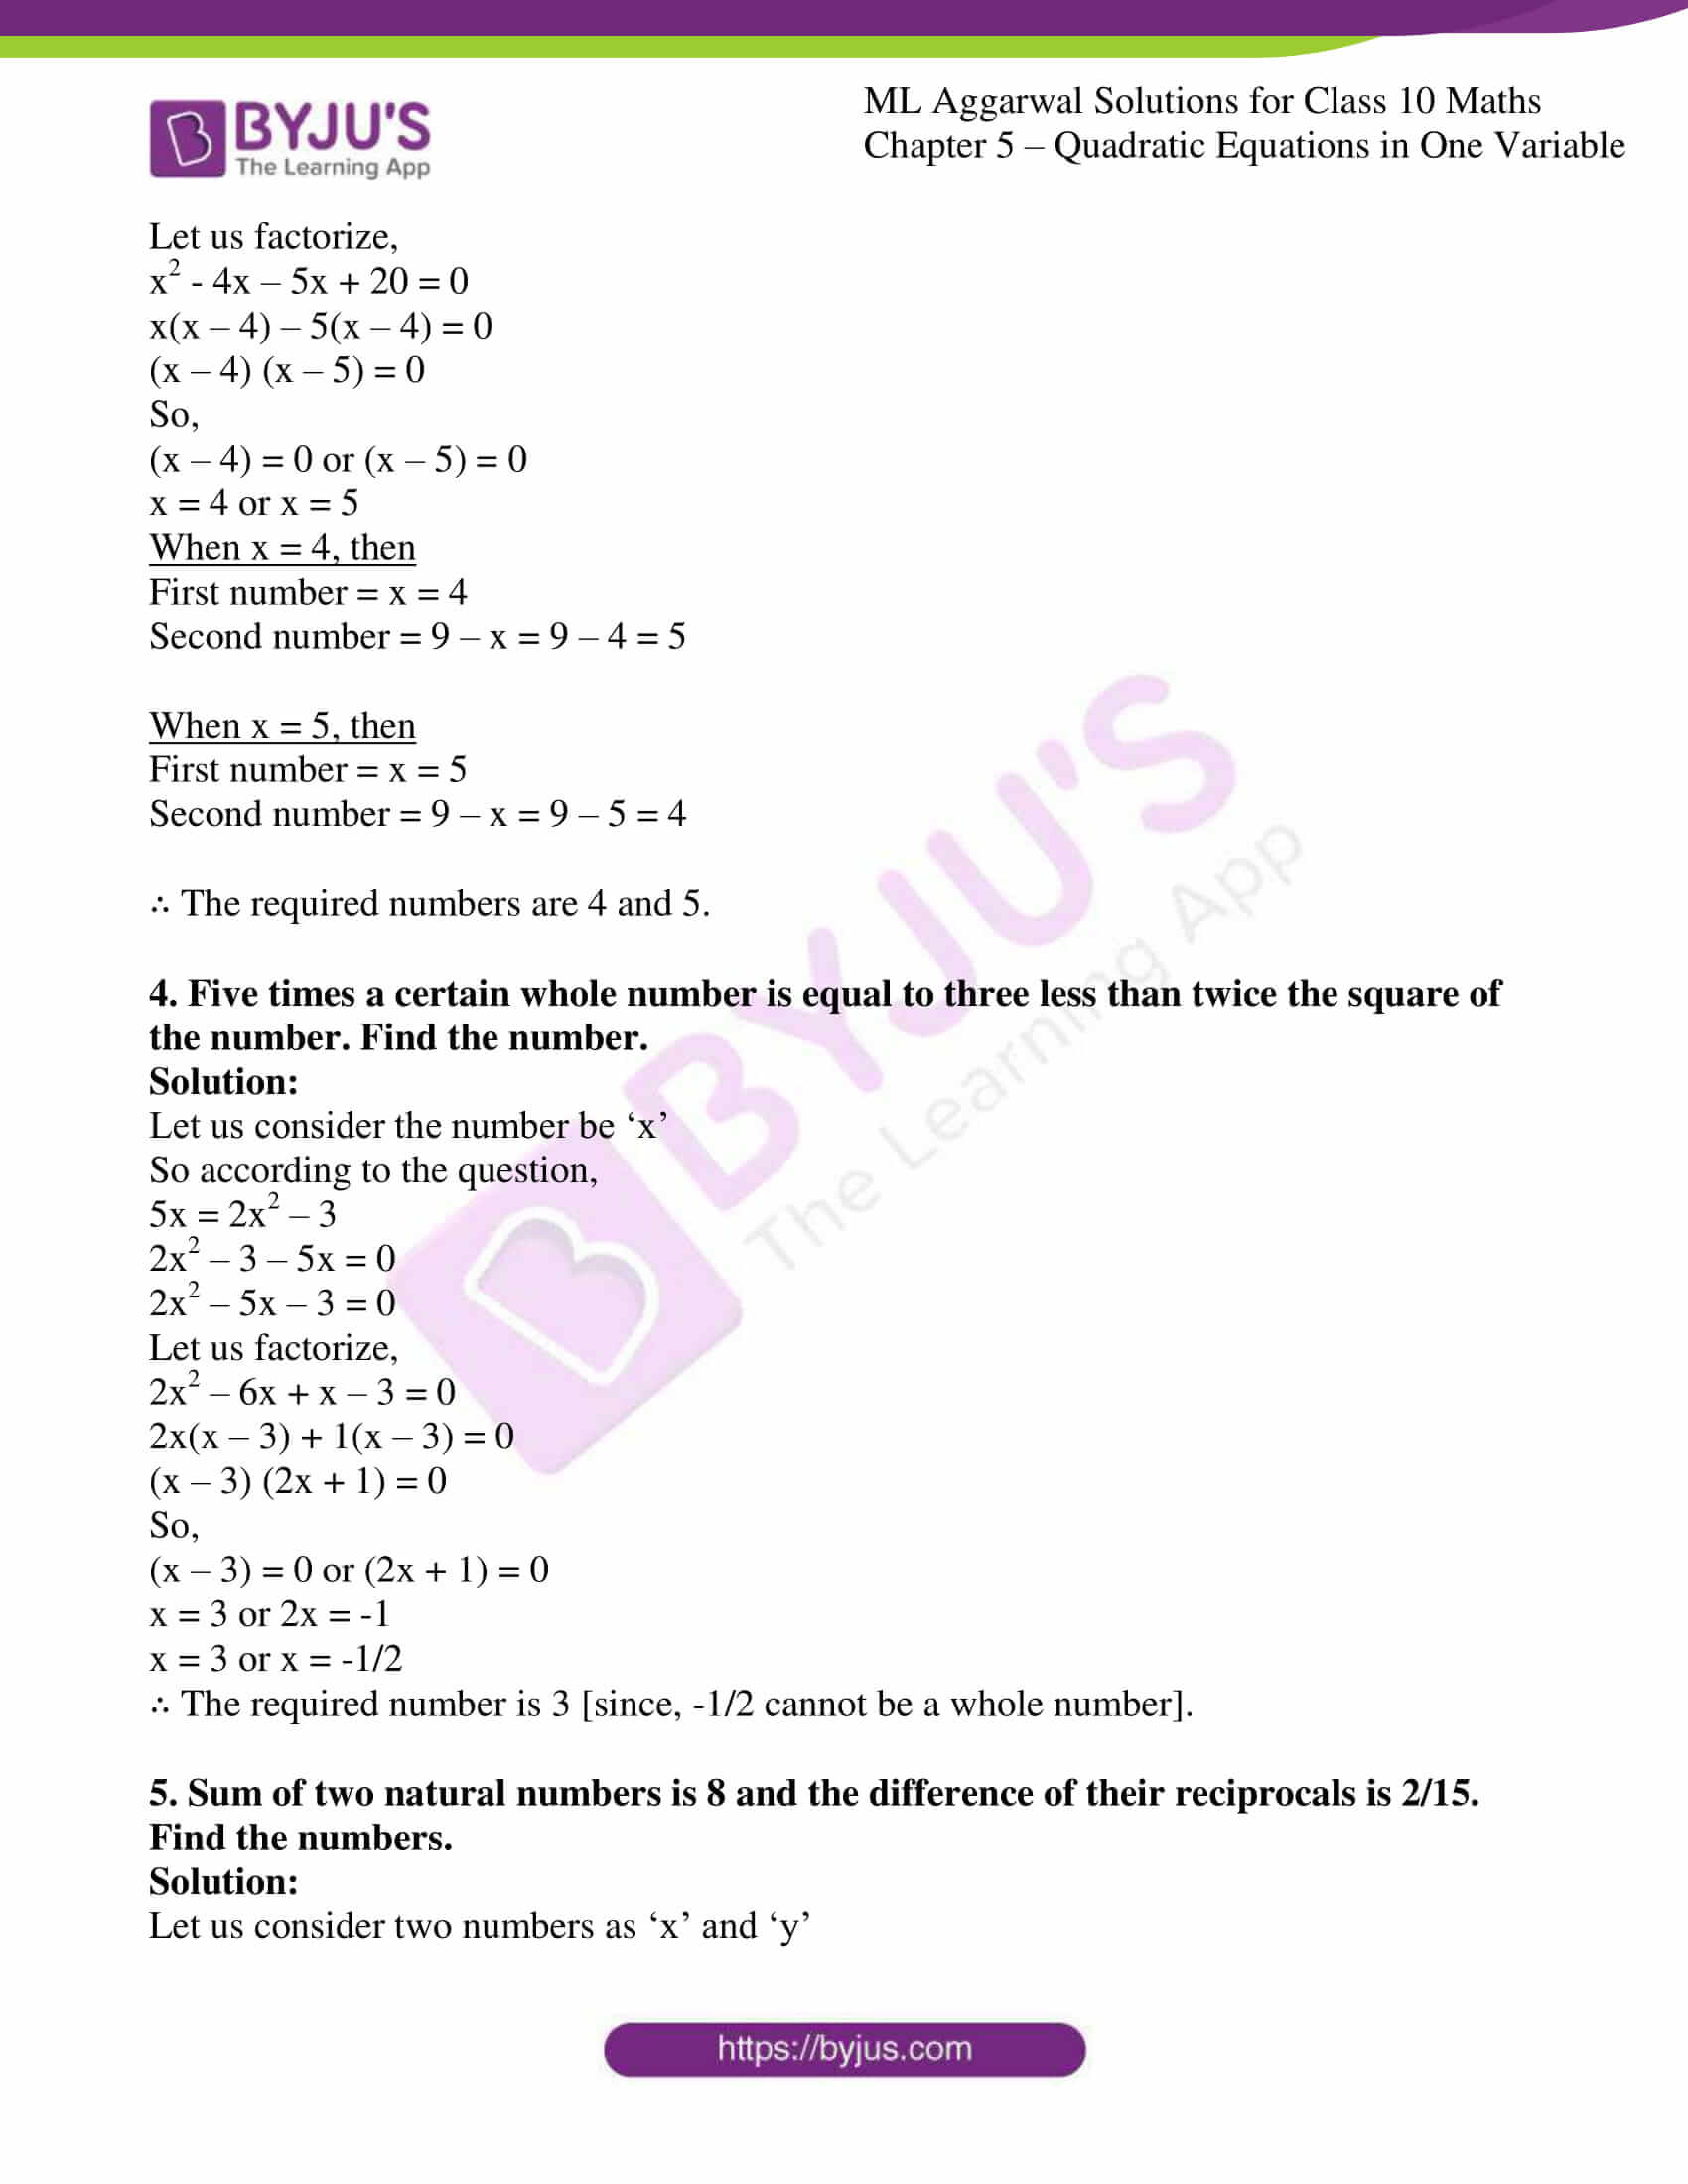 ml aggarwal solutions class 10 maths chapter 5 51